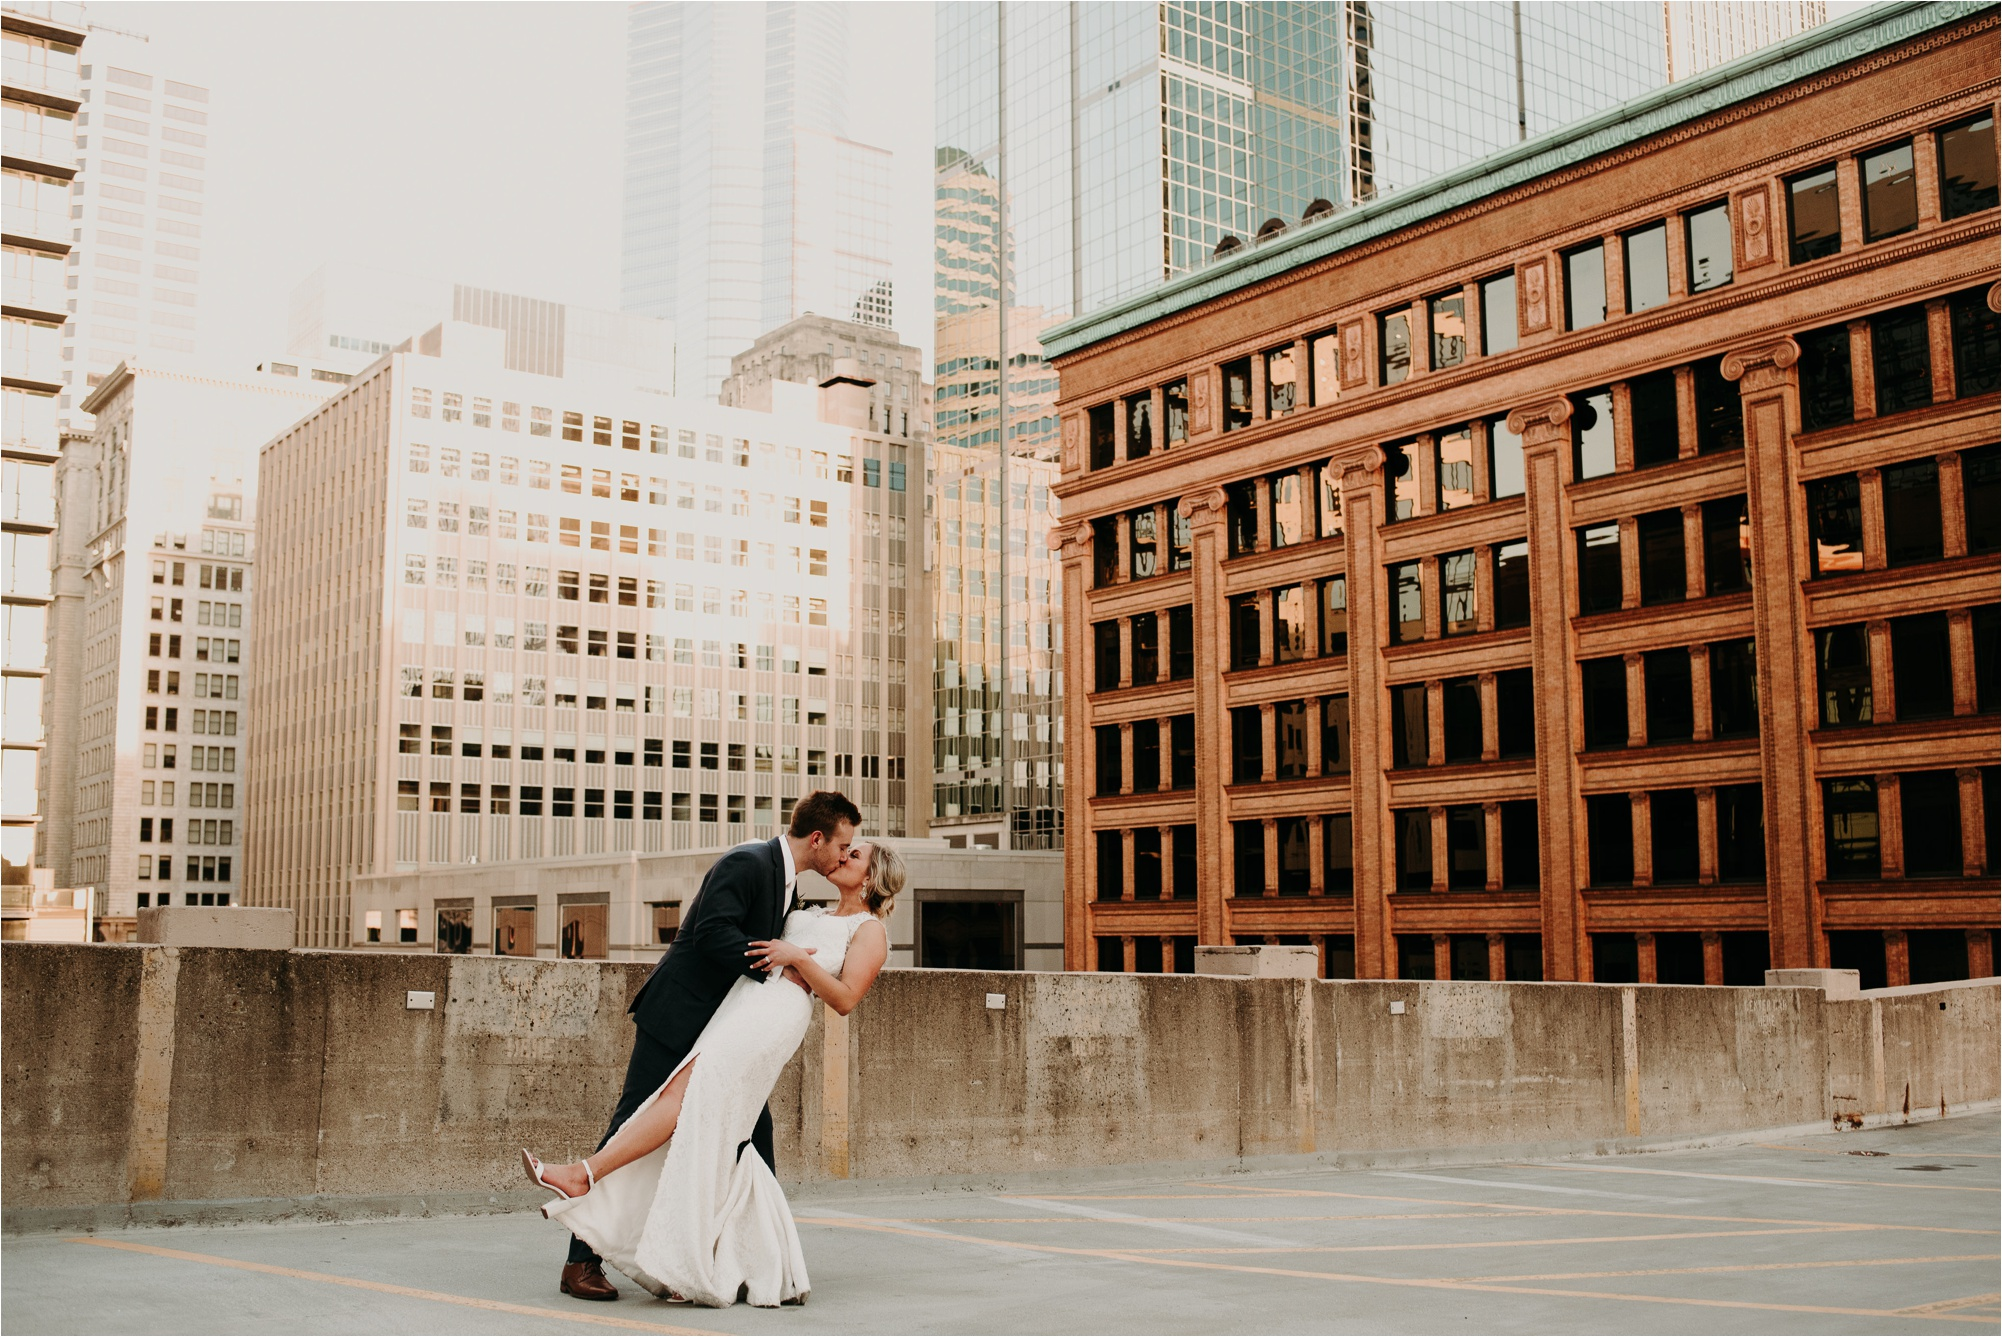 downtown minneapolis nicollet bride and groom wedding photography photos minneapolis wedding photographer